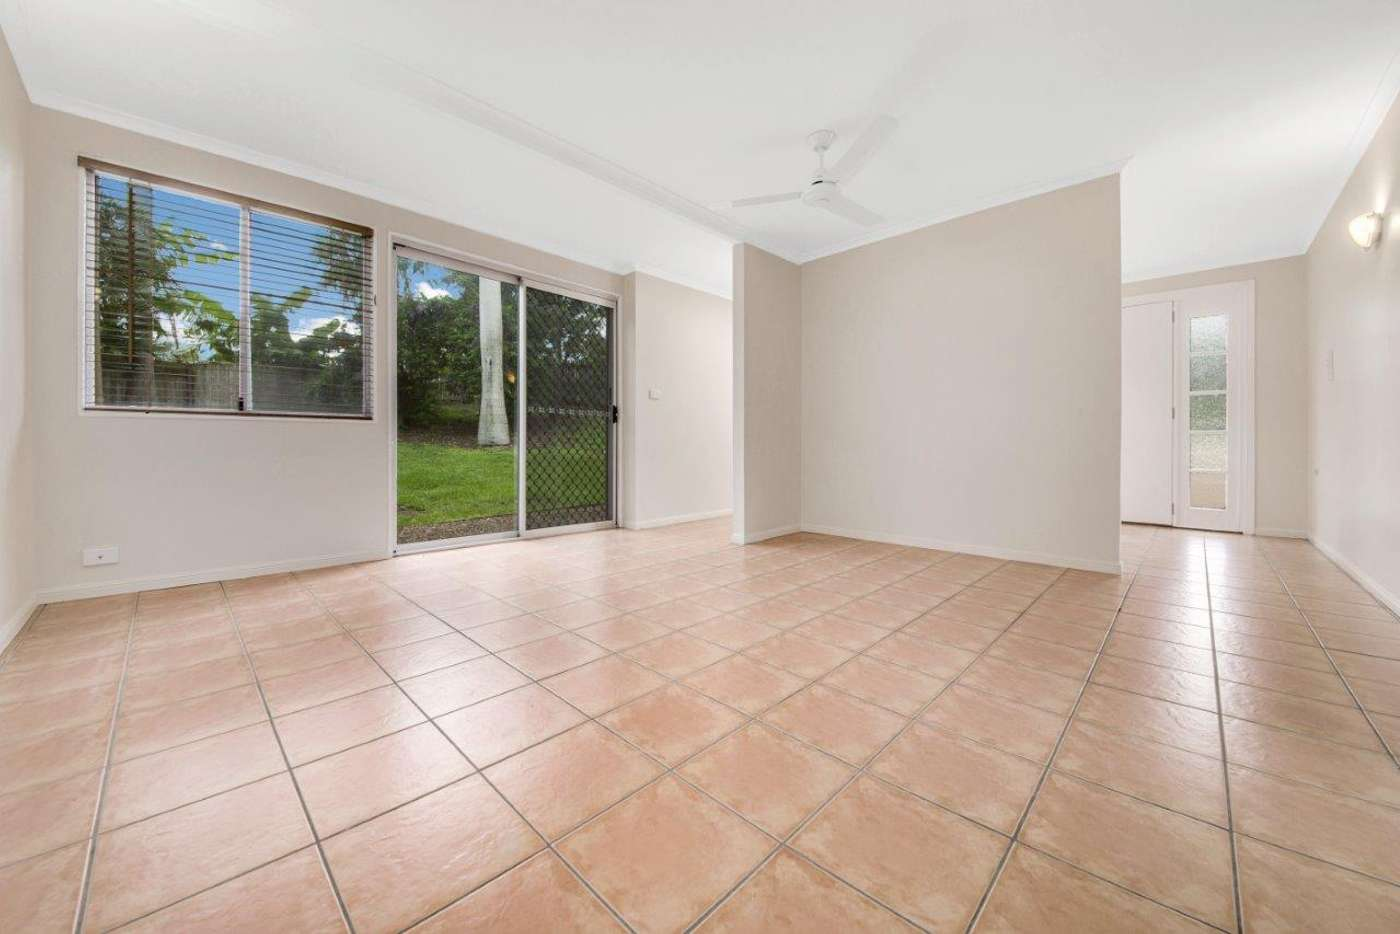 Sixth view of Homely house listing, 53 Langdon Street, Tannum Sands QLD 4680